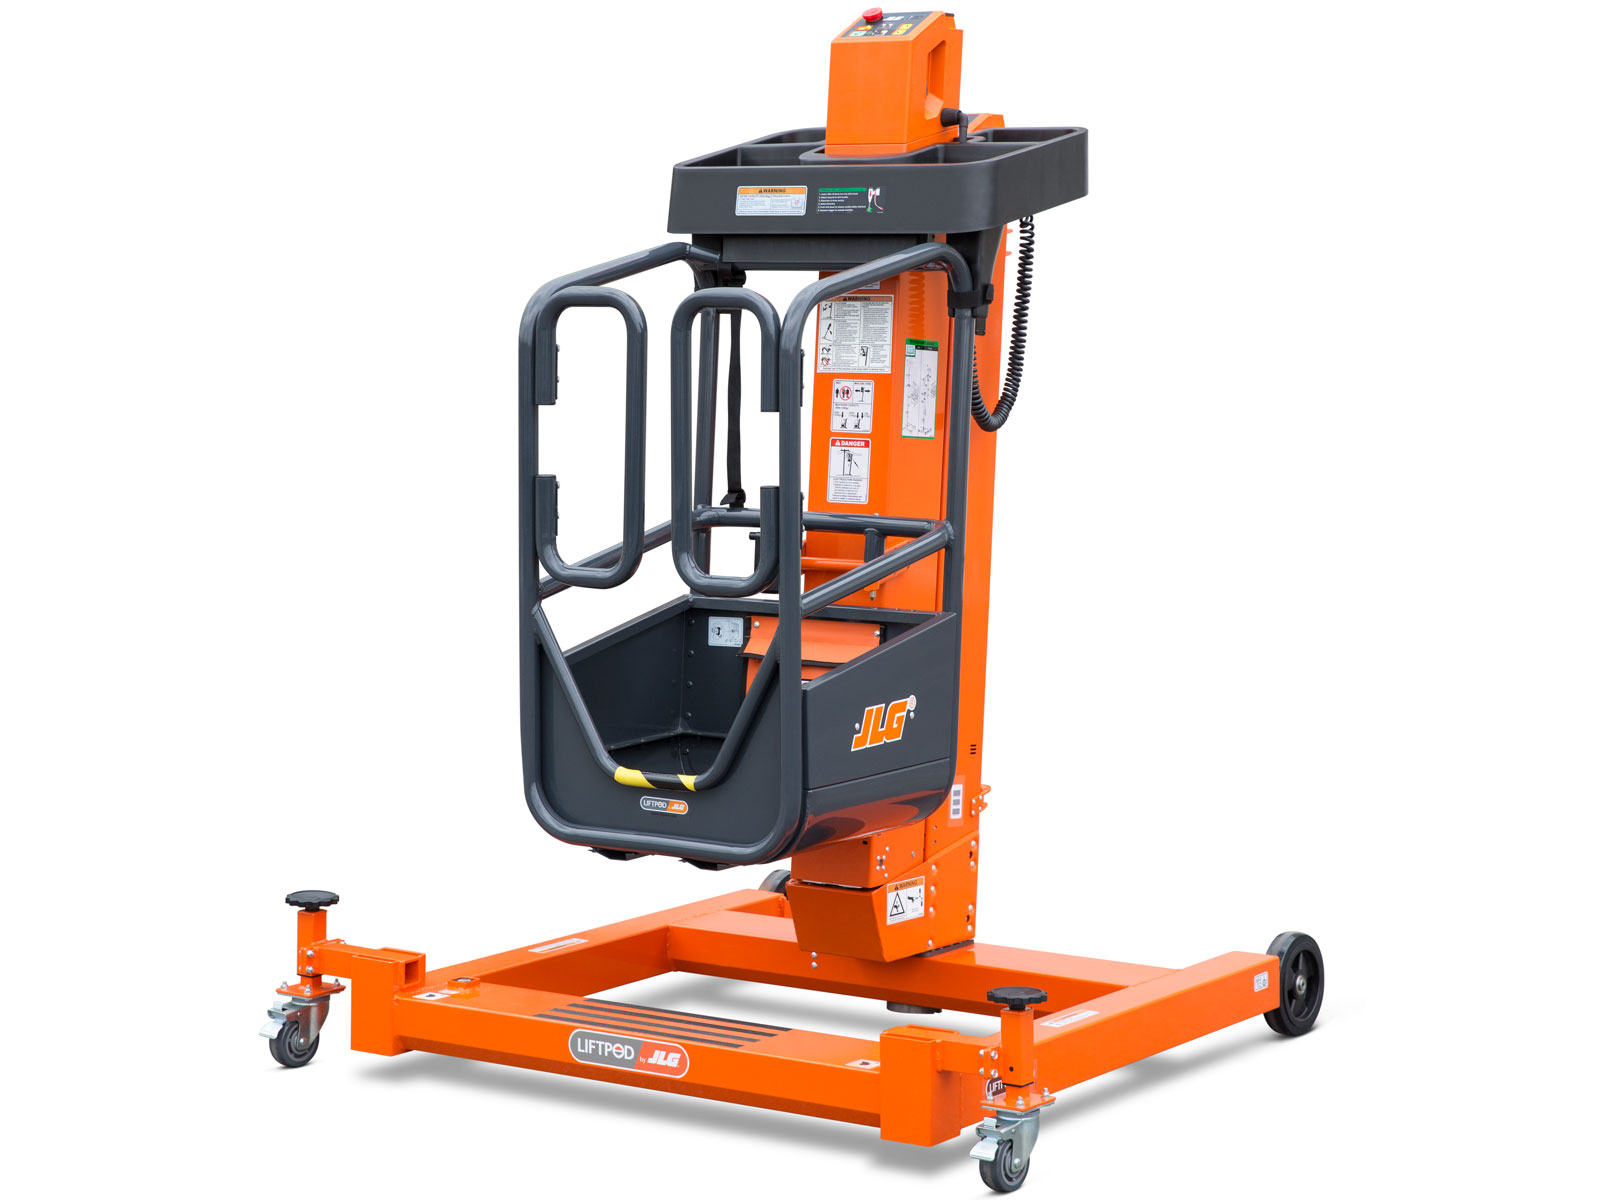 Liftpod Ft140 Personal Portable Lift Jlg Charger For Scissor Wiring Diagram